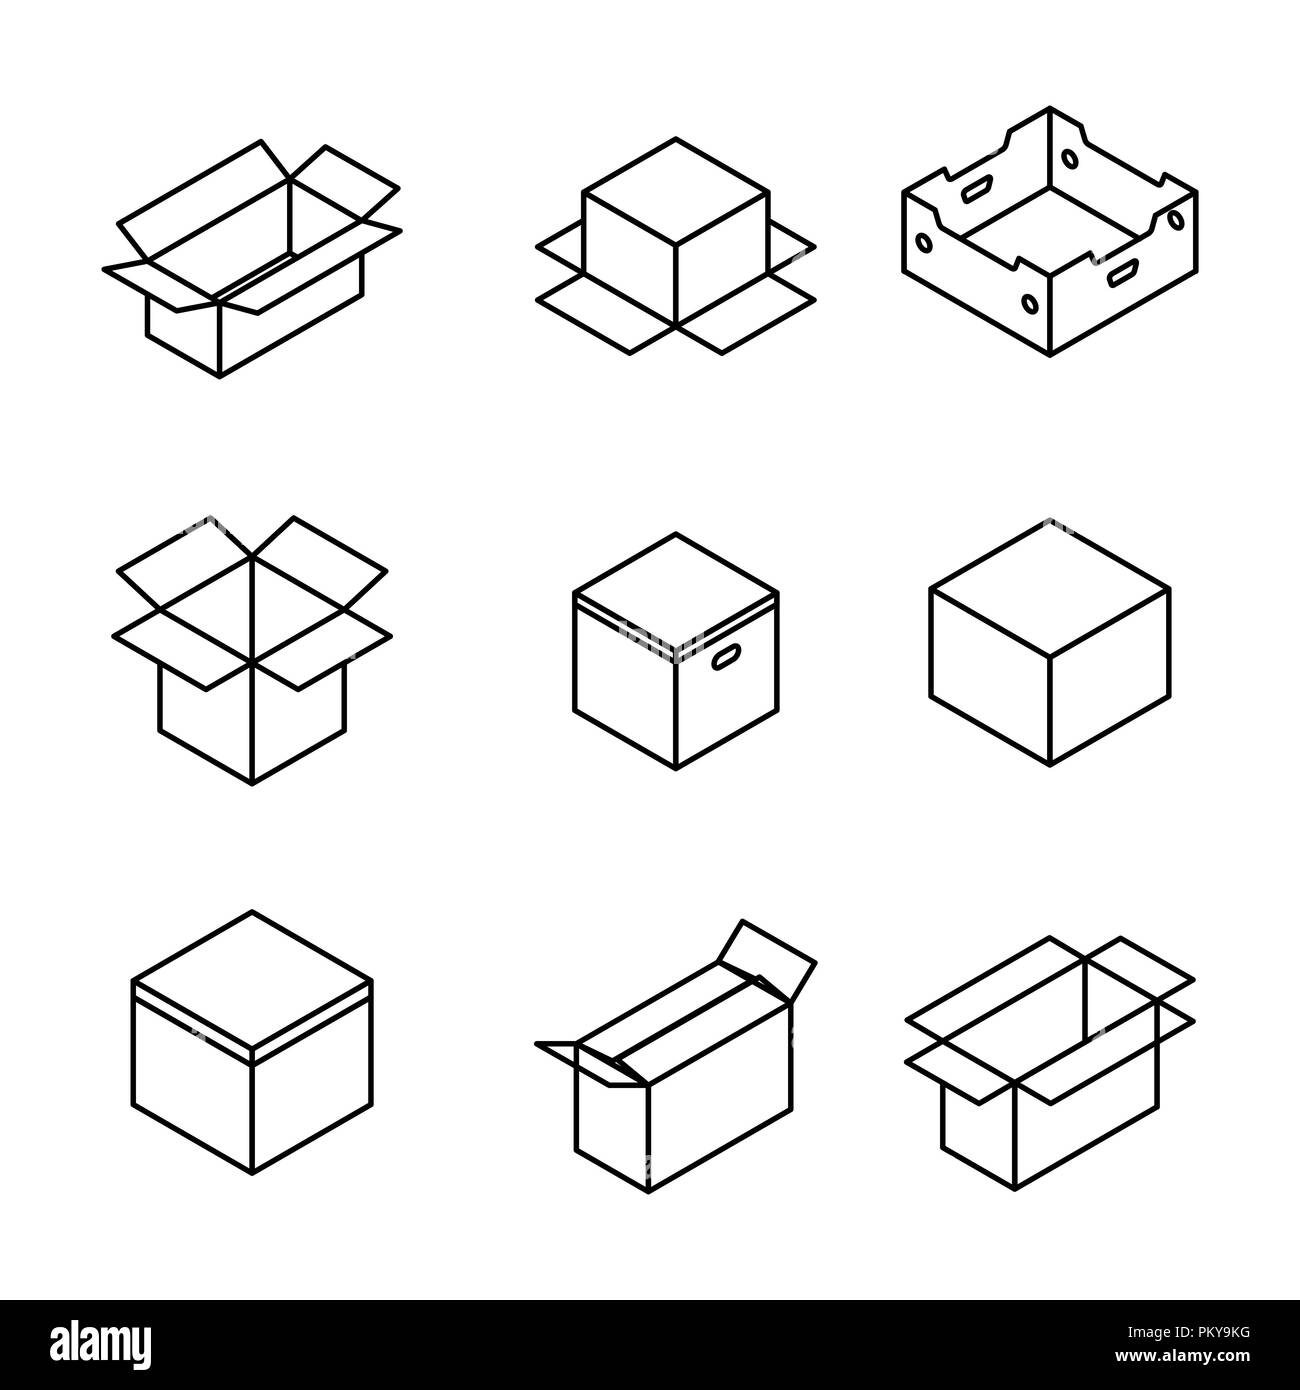 91de6f5ee36 Set of different cardboard boxes from thin lines isolated on white  background. Packaging design elements. Flat 3D isometric style